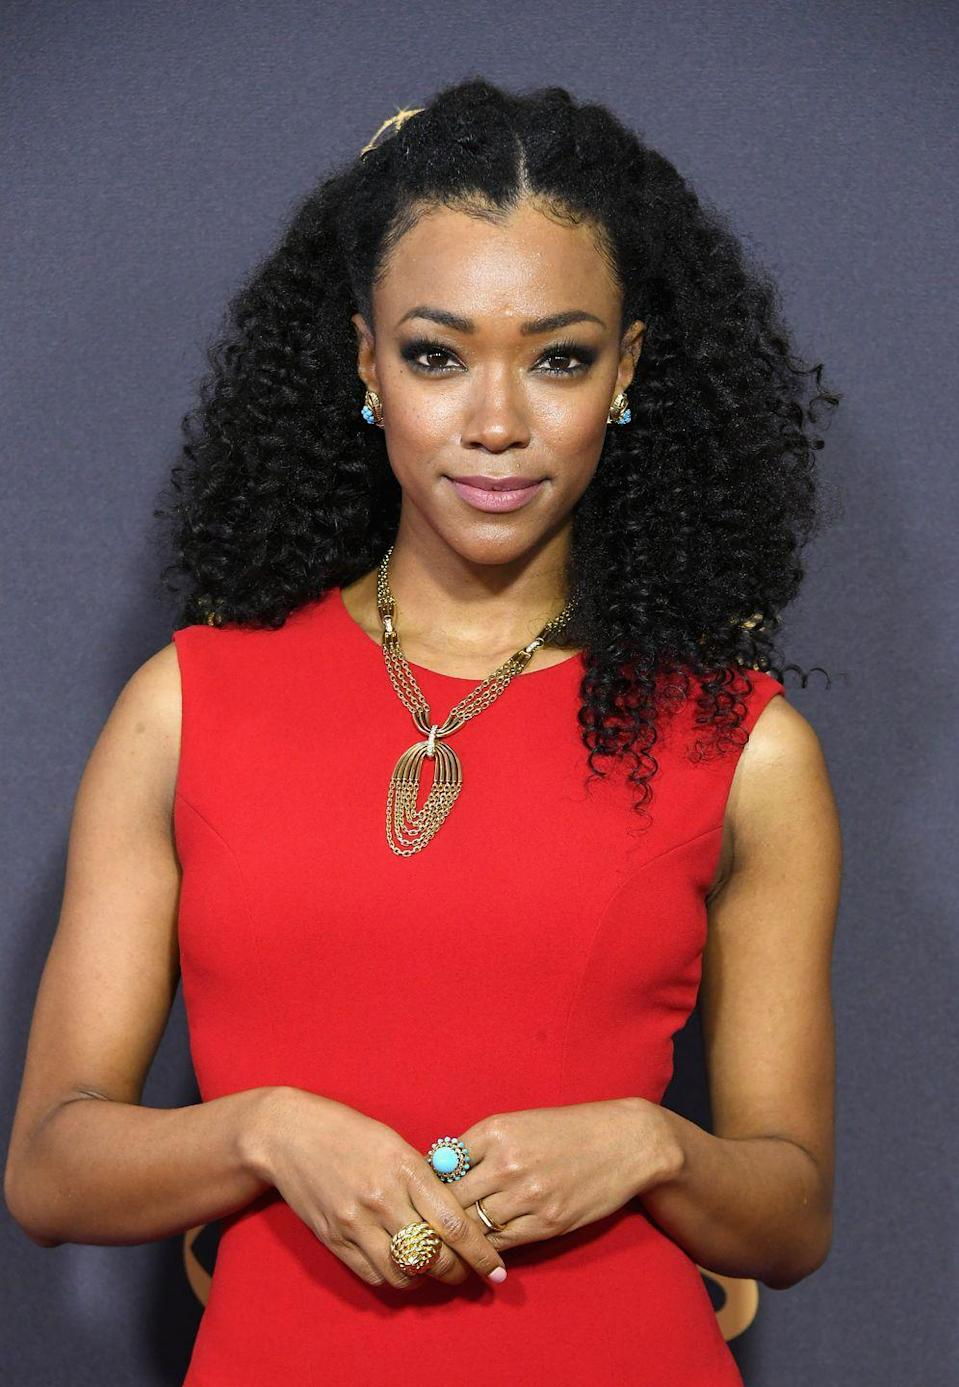 """<p><strong>The role: </strong><a href=""""https://twitter.com/SonequaMG/status/661006344179306496"""" rel=""""nofollow noopener"""" target=""""_blank"""" data-ylk=""""slk:Michonne"""" class=""""link rapid-noclick-resp"""">Michonne</a> on <em>The Walking Dead</em> </p><p><strong>Who *actually* played it:</strong> Danai Gurira</p><p><strong>The role they played instead:</strong> Sasha Williams<strong><br></strong></p><p>And this is <em>another</em> case of a character being created for an actor after an impressive audition. Seriously, not a bad outcome.</p>"""